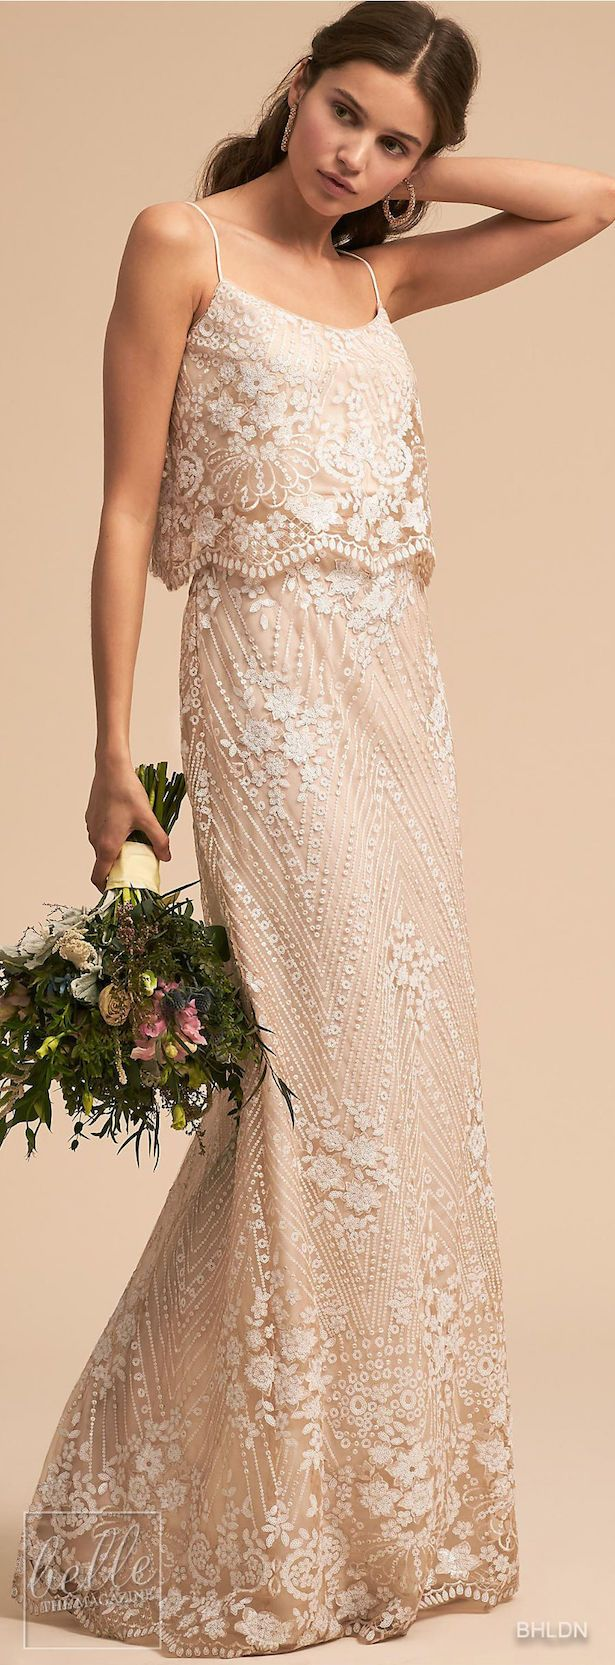 Bridal Style: BHLDN Spring 2014 Collection | School dances, Gowns ...